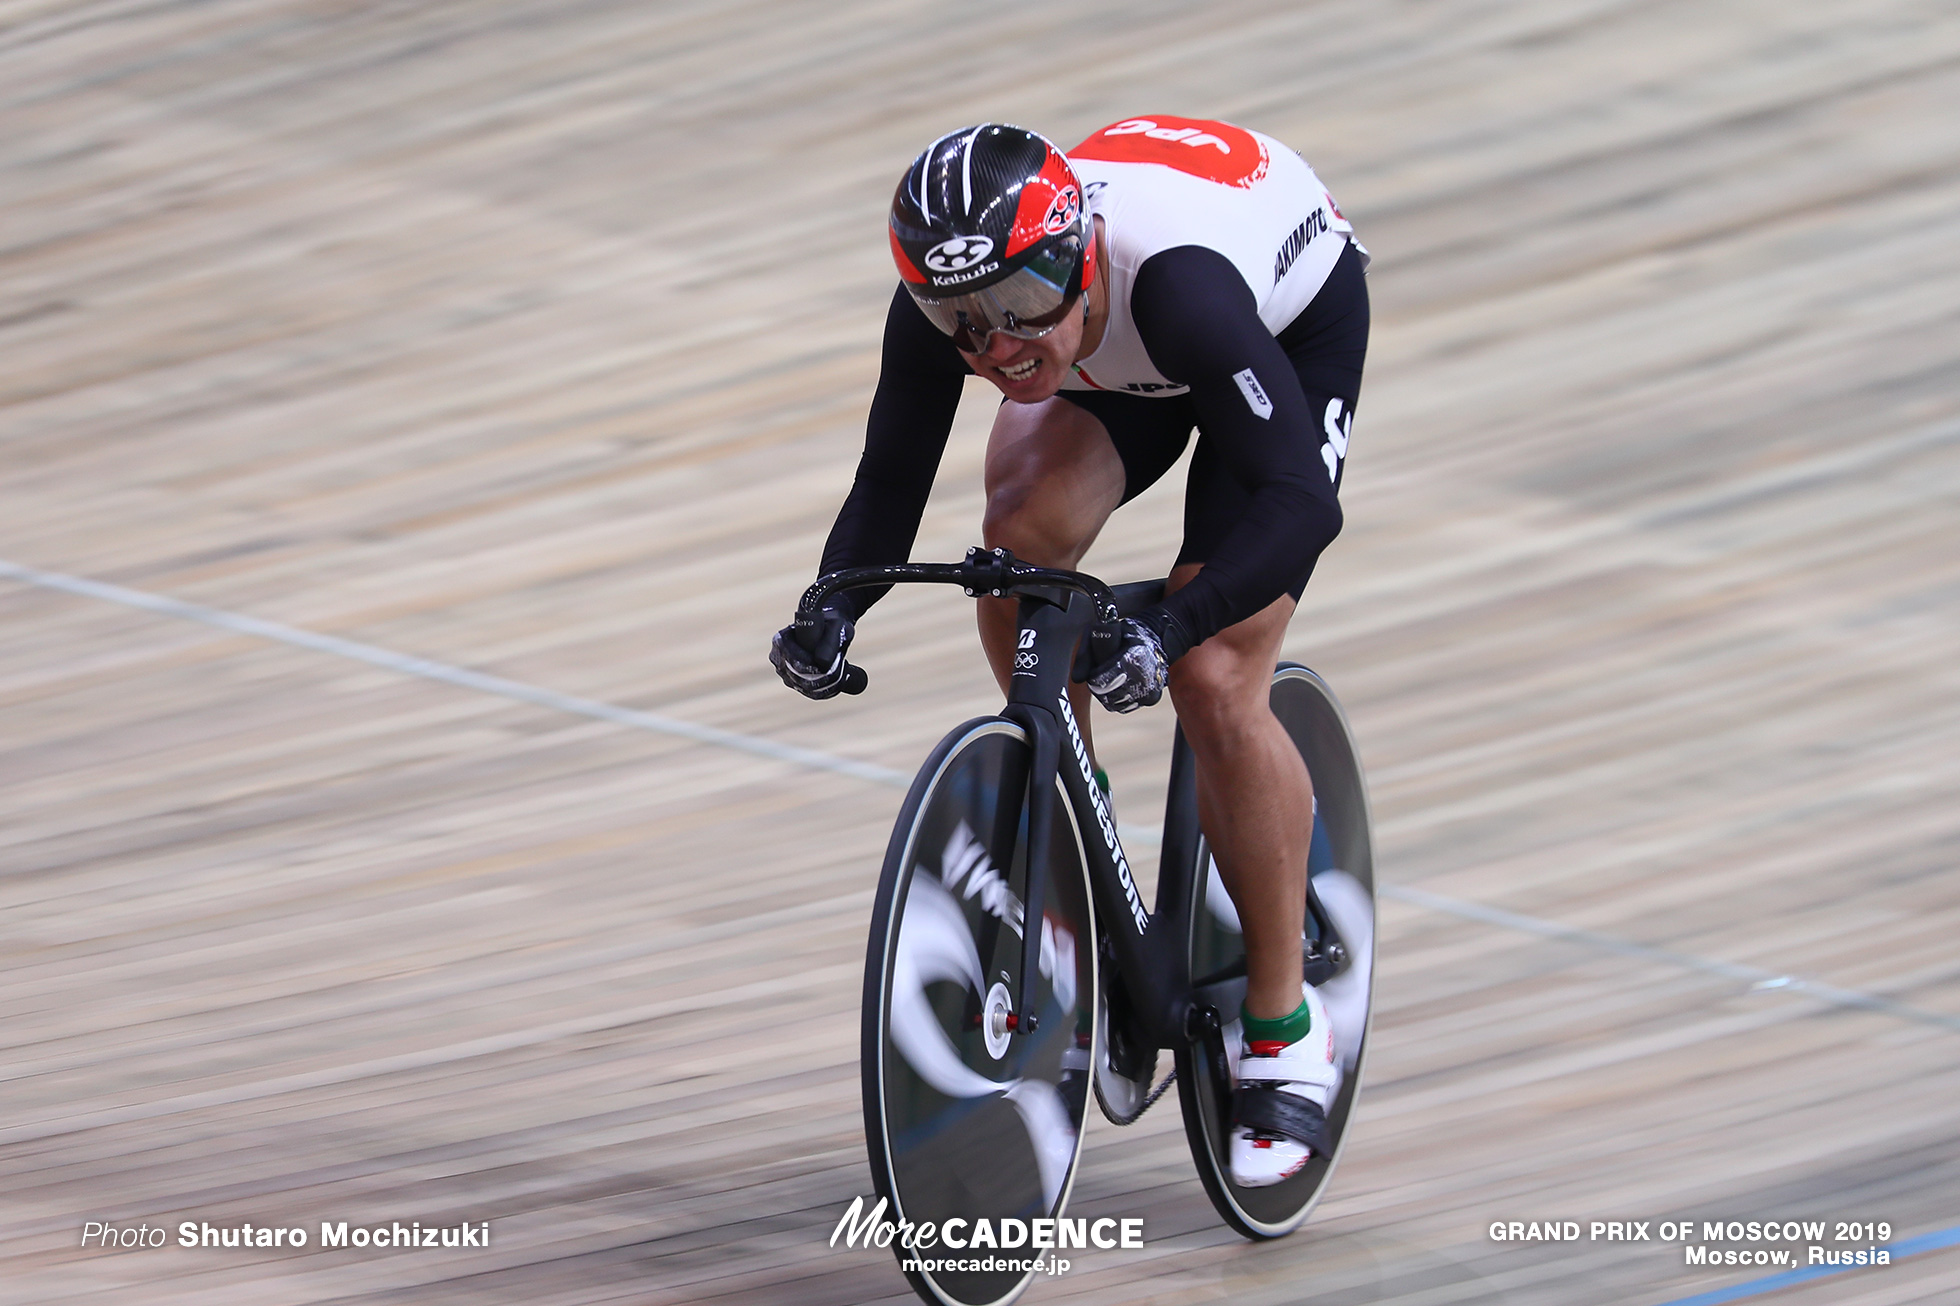 Qualifying / Men's Sprint / GRAND PRIX OF MOSCOW 2019